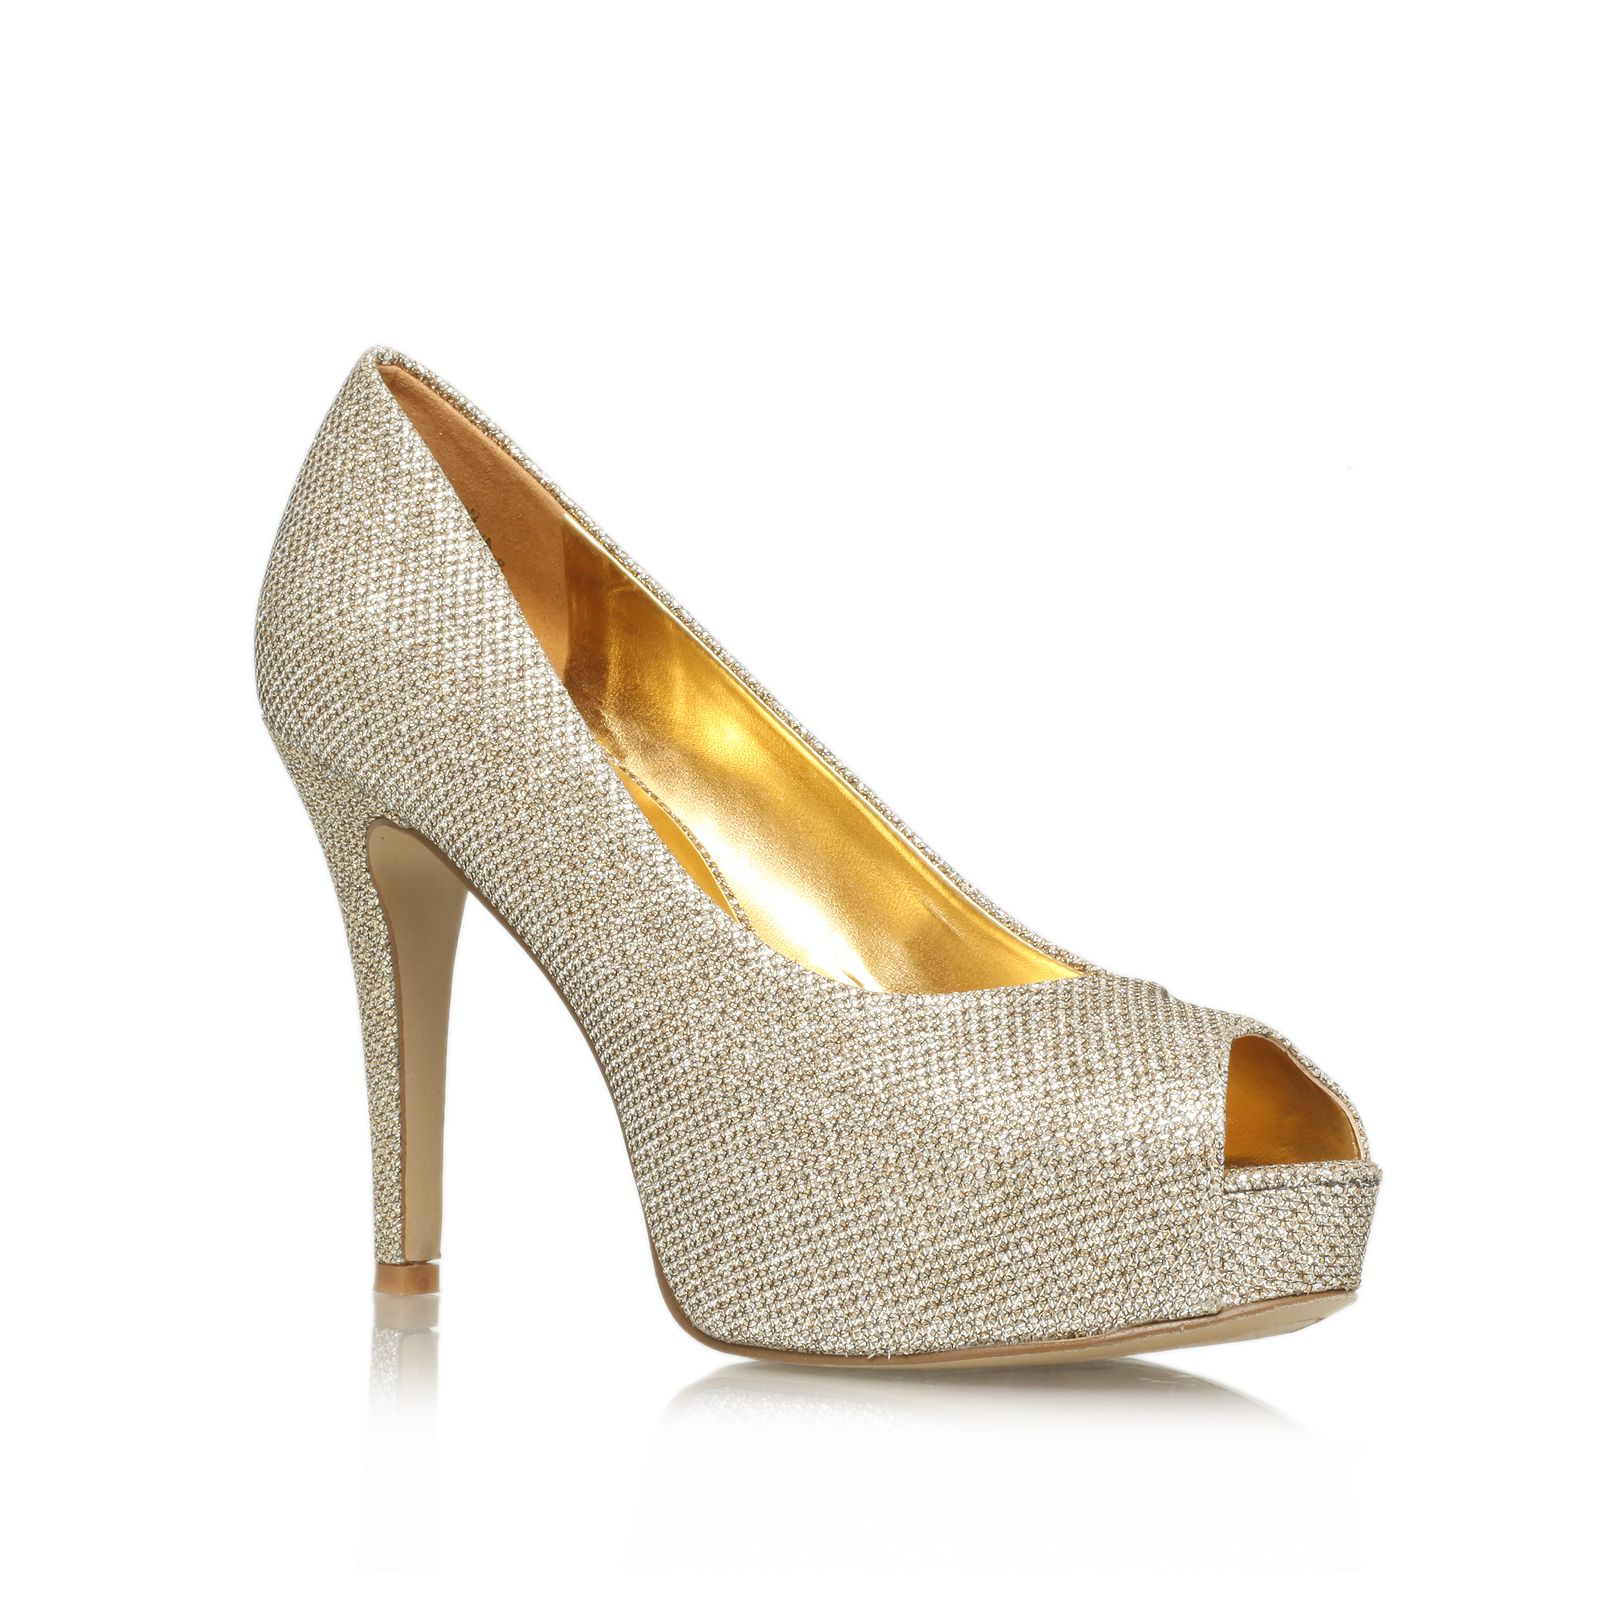 Camya22 high heel court shoes